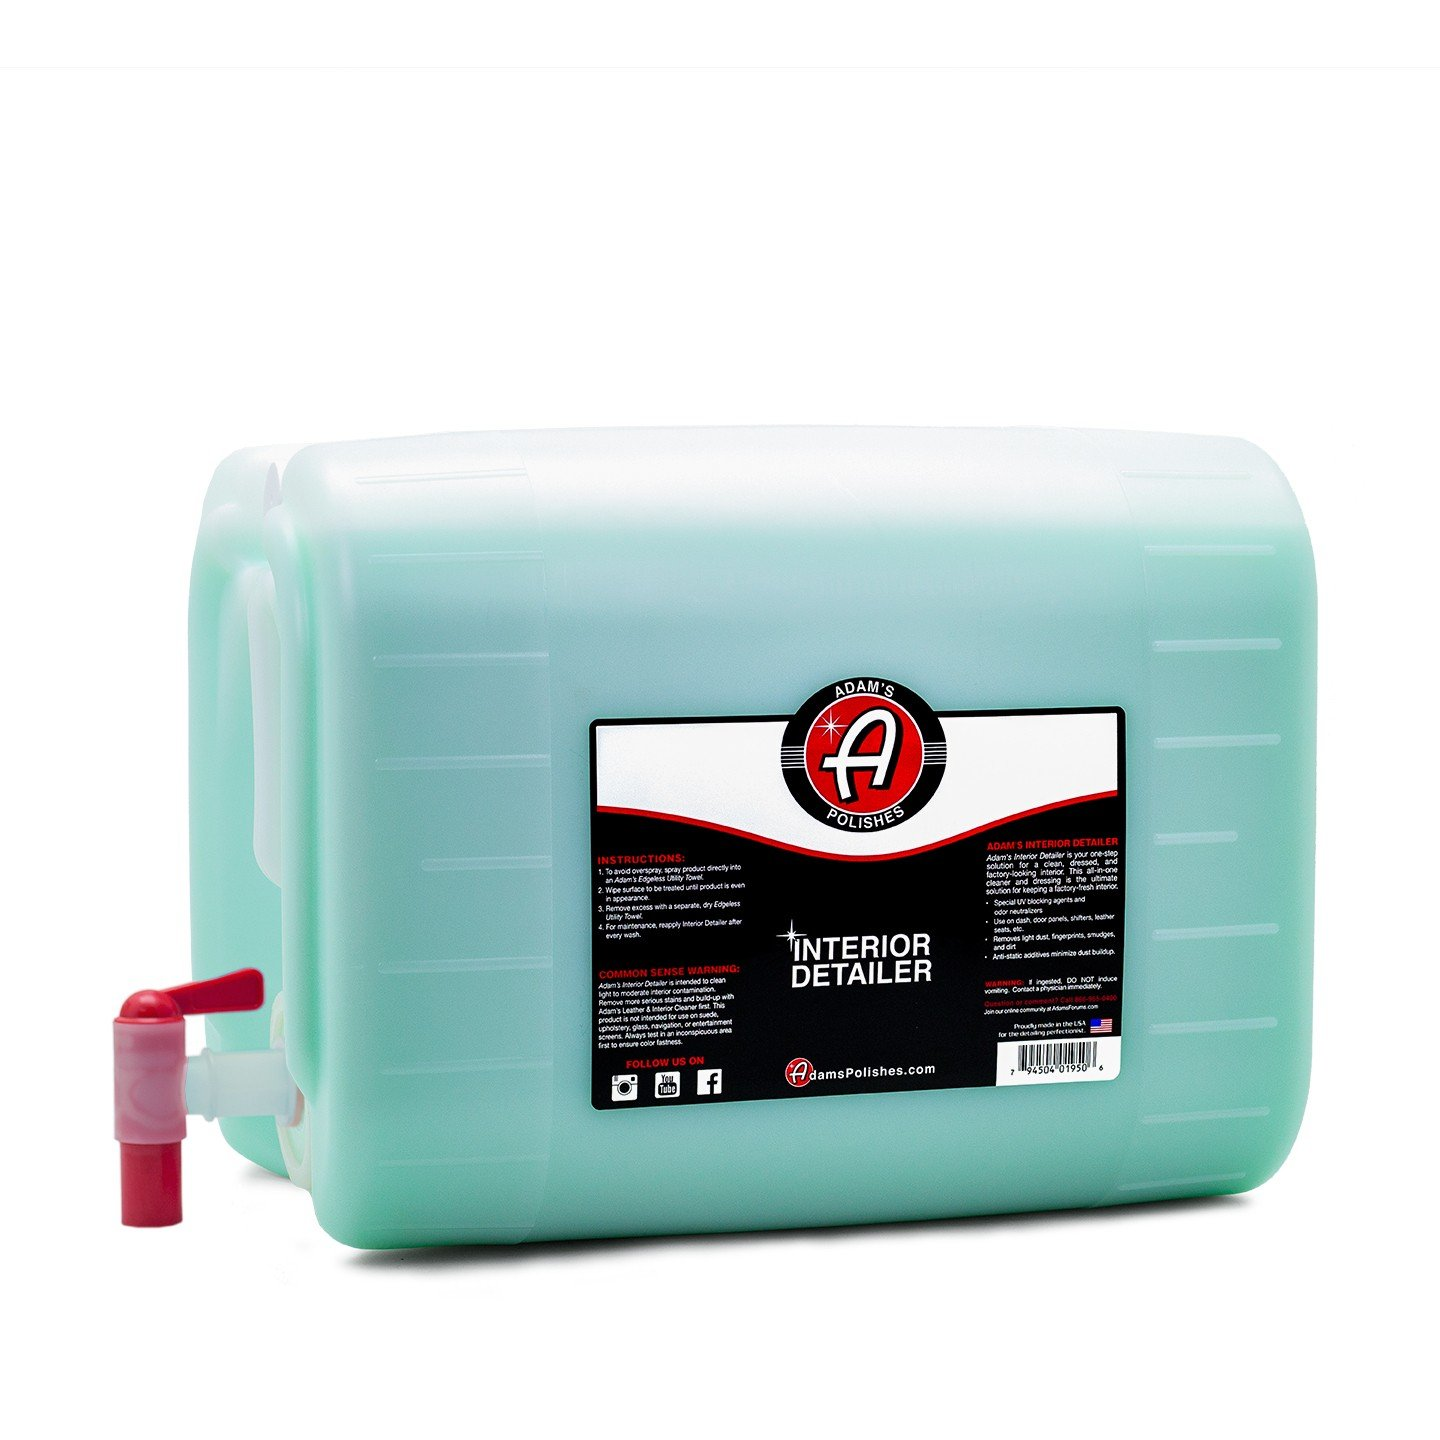 Adam's Interior Detailer - Clean and Dress Interior Surfaces in One Easy Step - Odor Neutralizers Kill Unwanted Odors - Anti-Static Formulation Adds UV Protection to Your Entire Interior (5 Gallon)